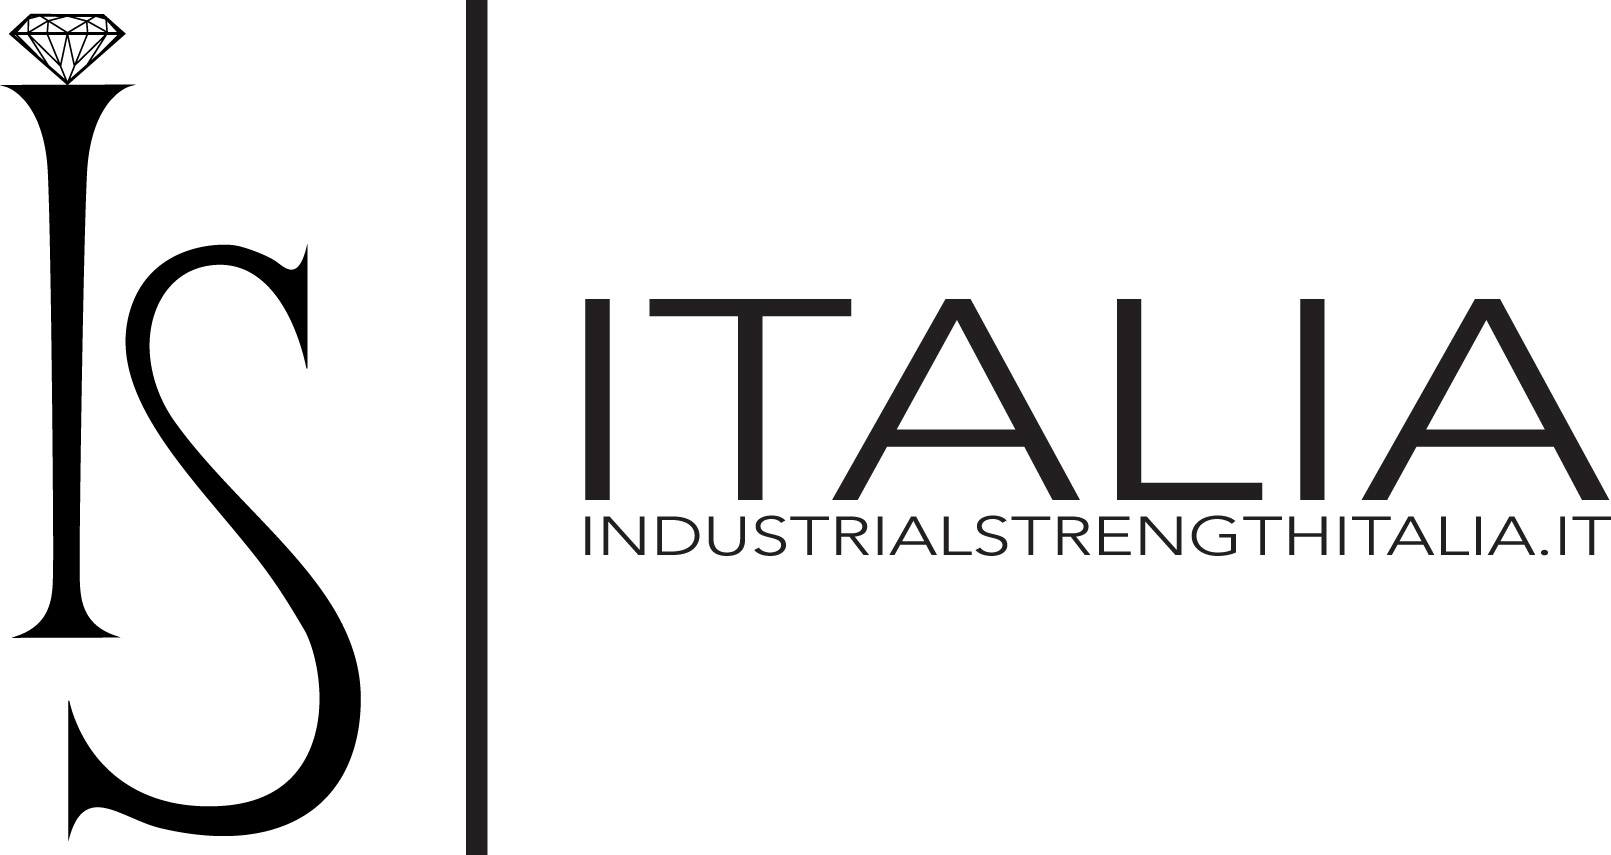 Industrial Strength Italia